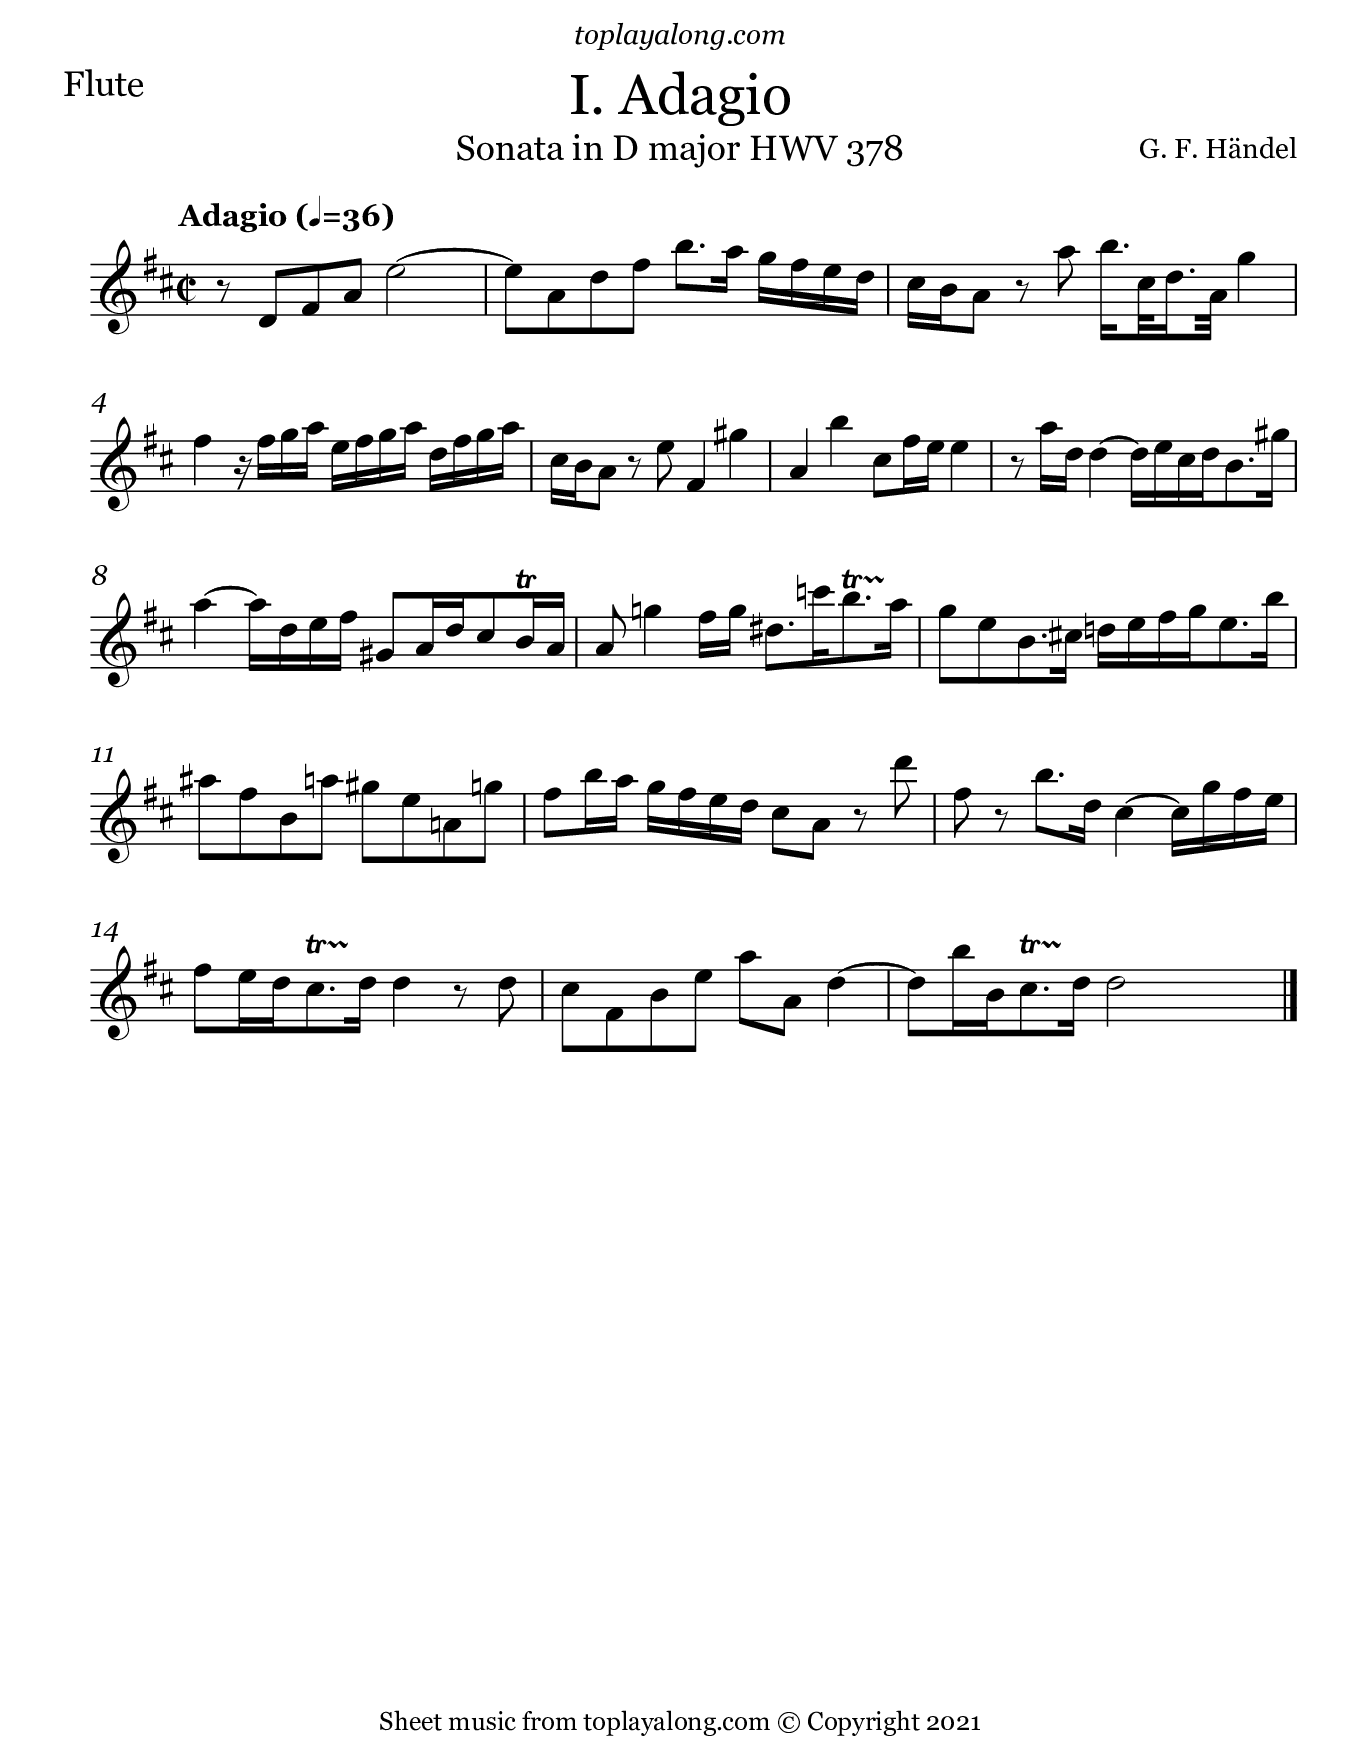 Flute Sonata in D major (I. Adagio) by Handel. Sheet music for Flute, page 1.